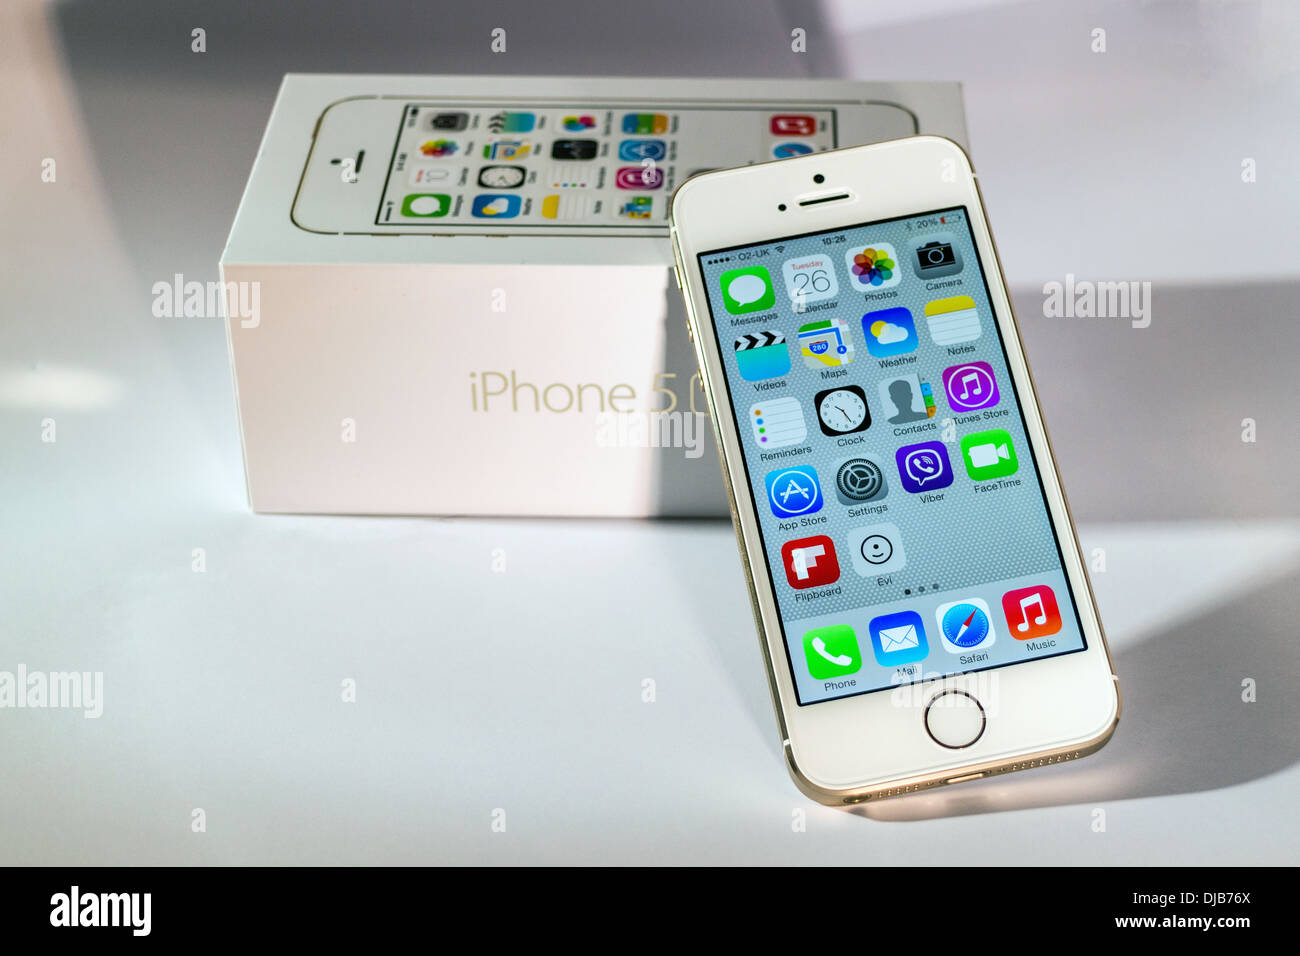 7d30cb893 iPhone 5s Gold Front View Slanted on Box With Shadows - Stock Image